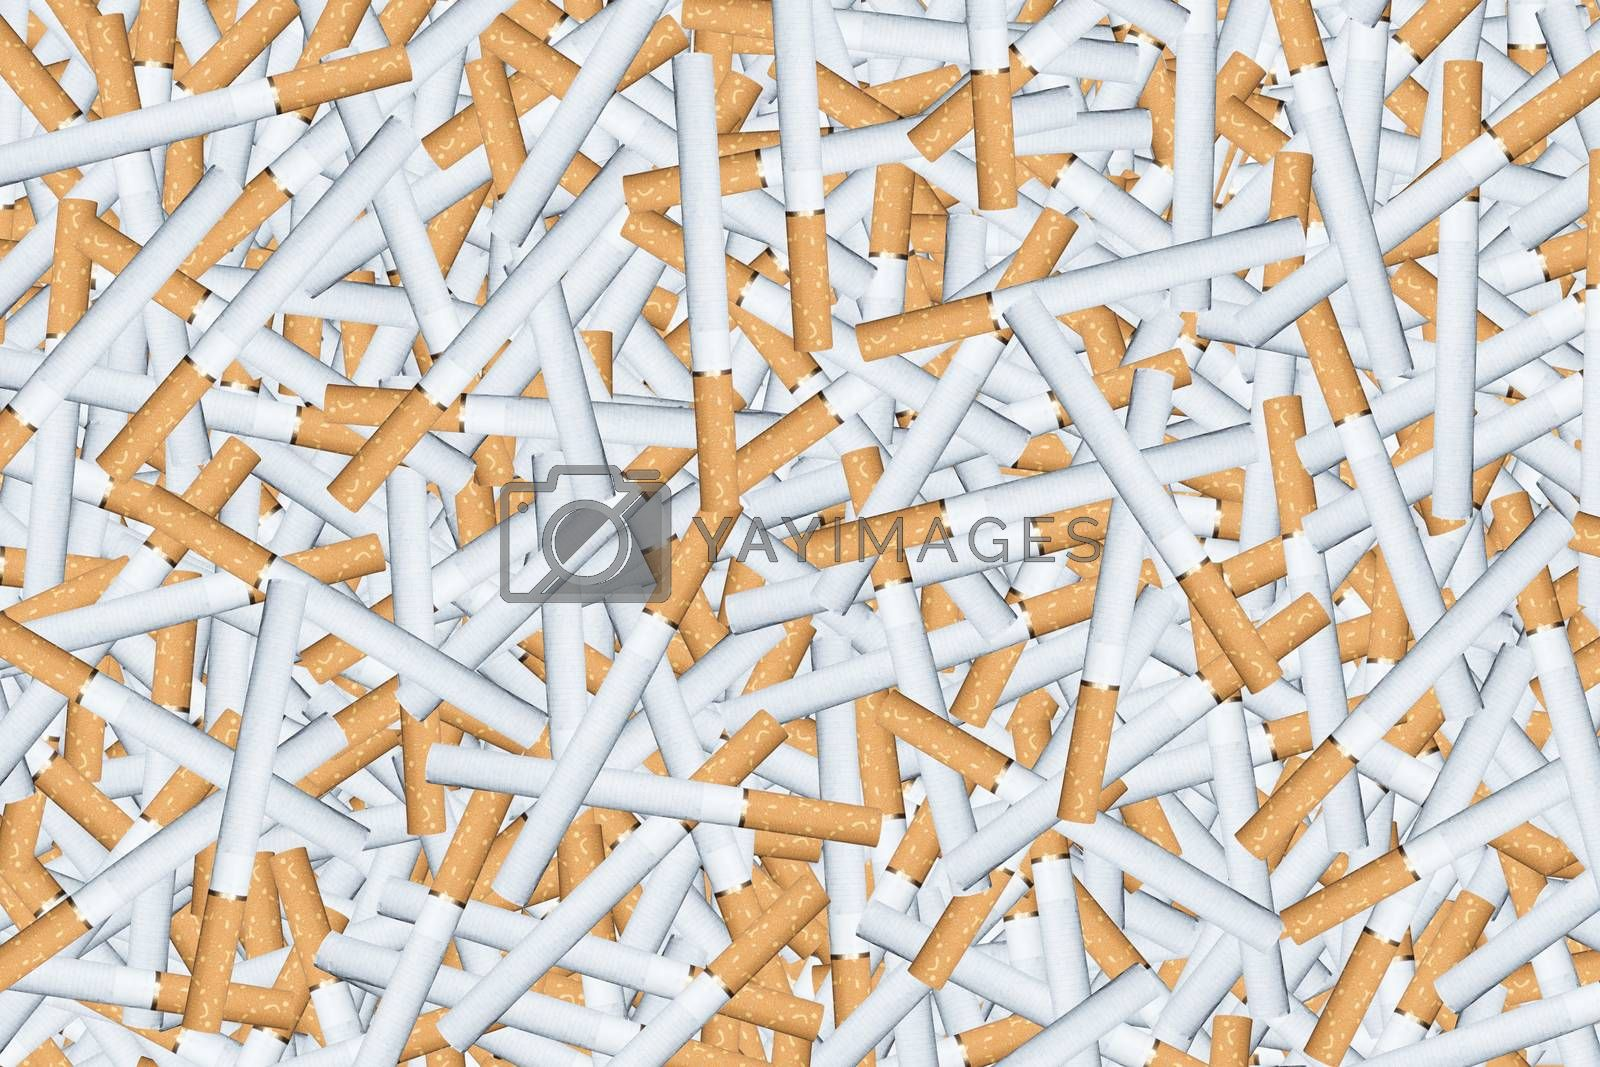 Royalty free image of Cigarettes by begun1983